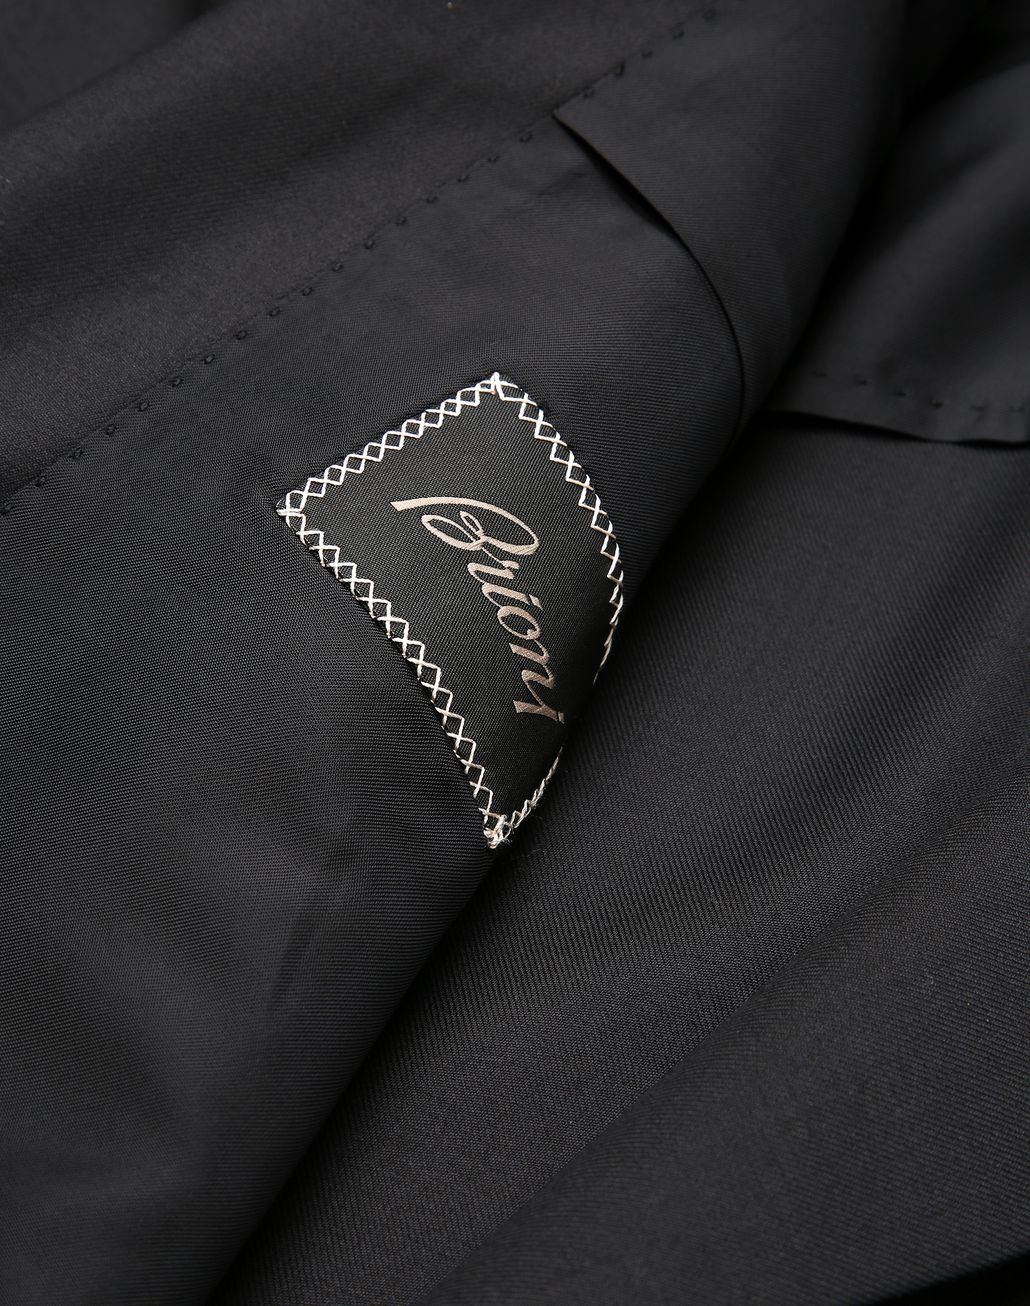 BRIONI Black Asmara Double-Breasted Suit Suits & Jackets Man b